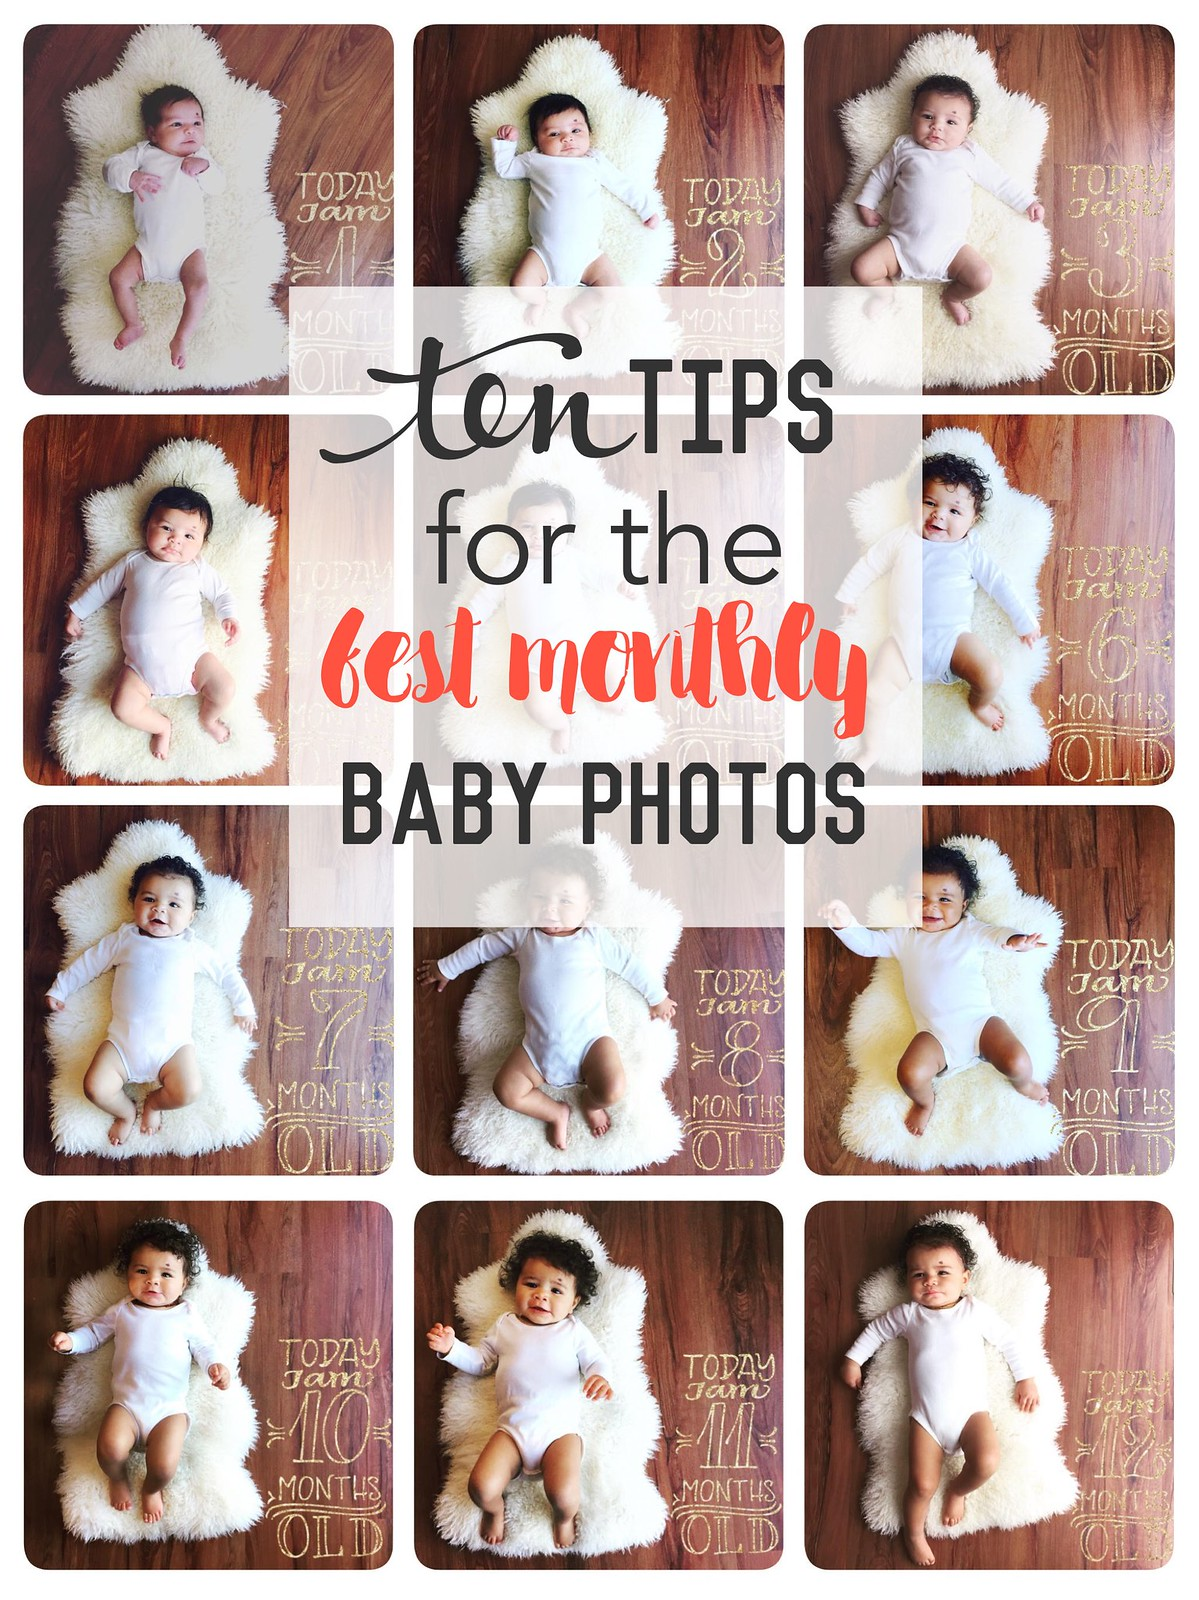 10 tips for the best monthly baby photos